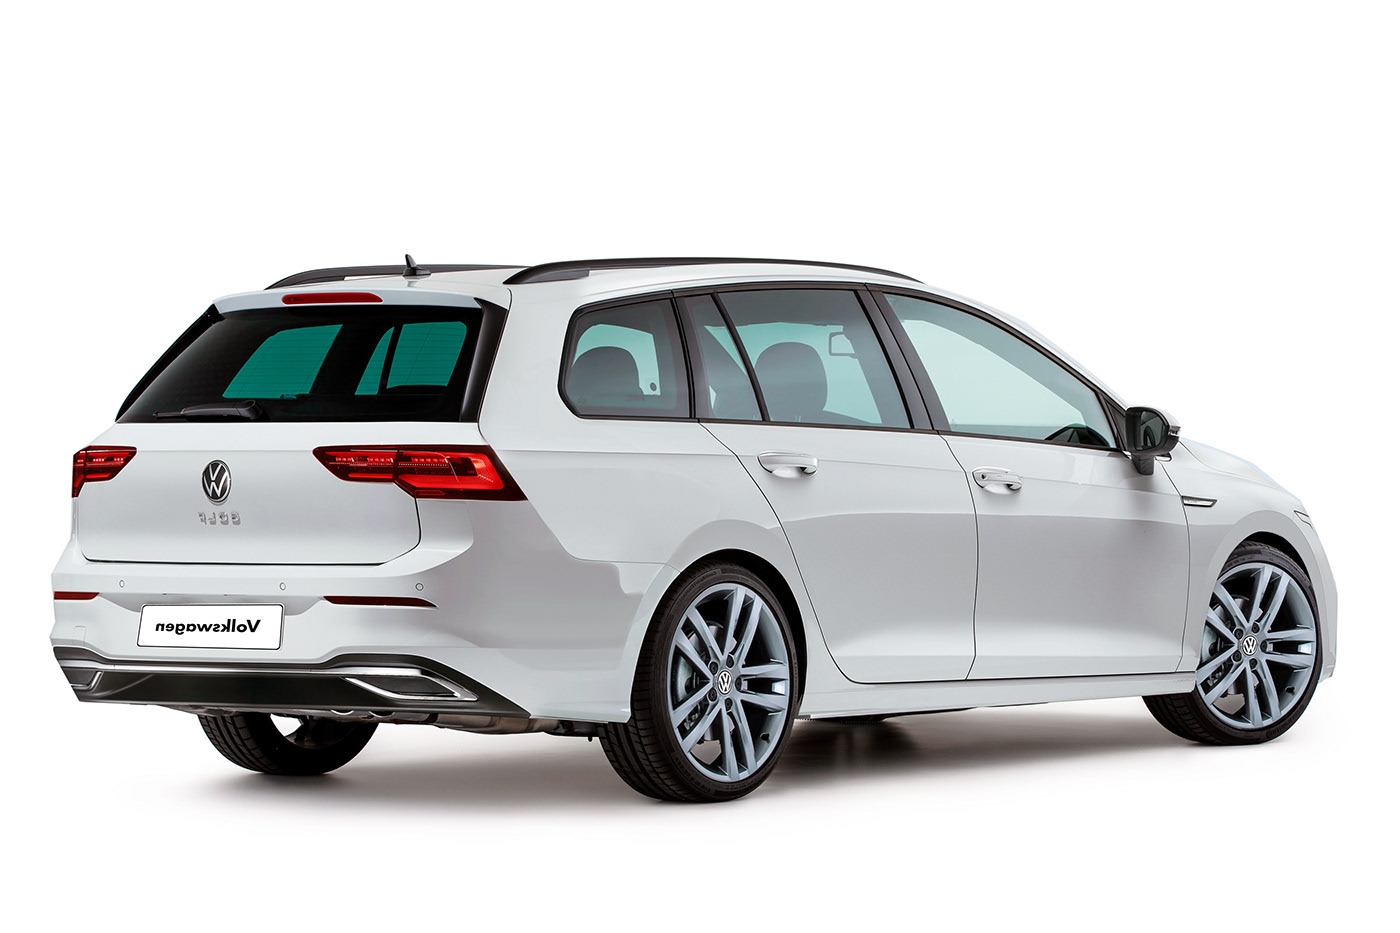 2021 Volkswagen Golf Variant / Sportwagen Rendered, Looks